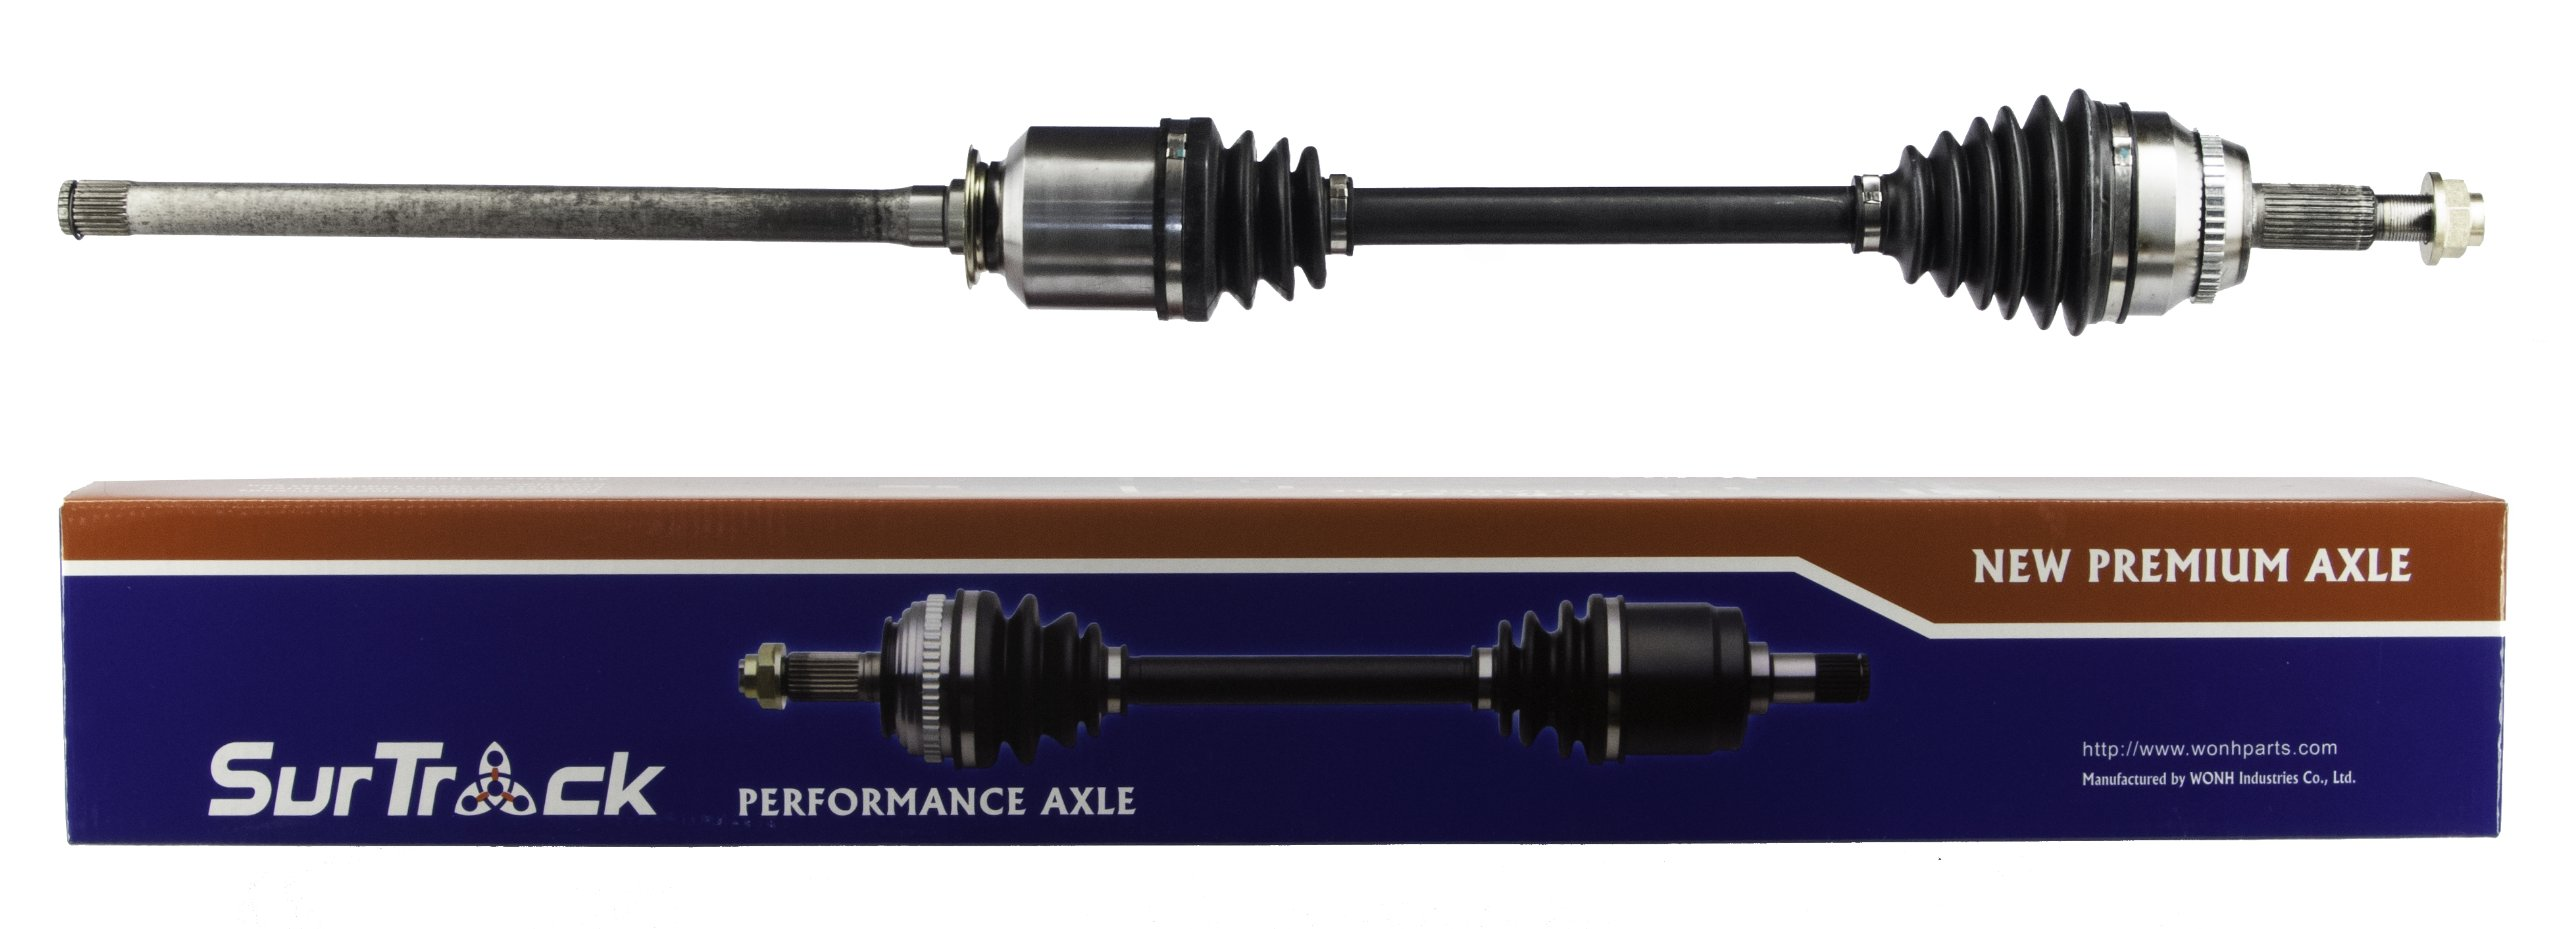 SurTrack TO-8172 CV Axle Shaft